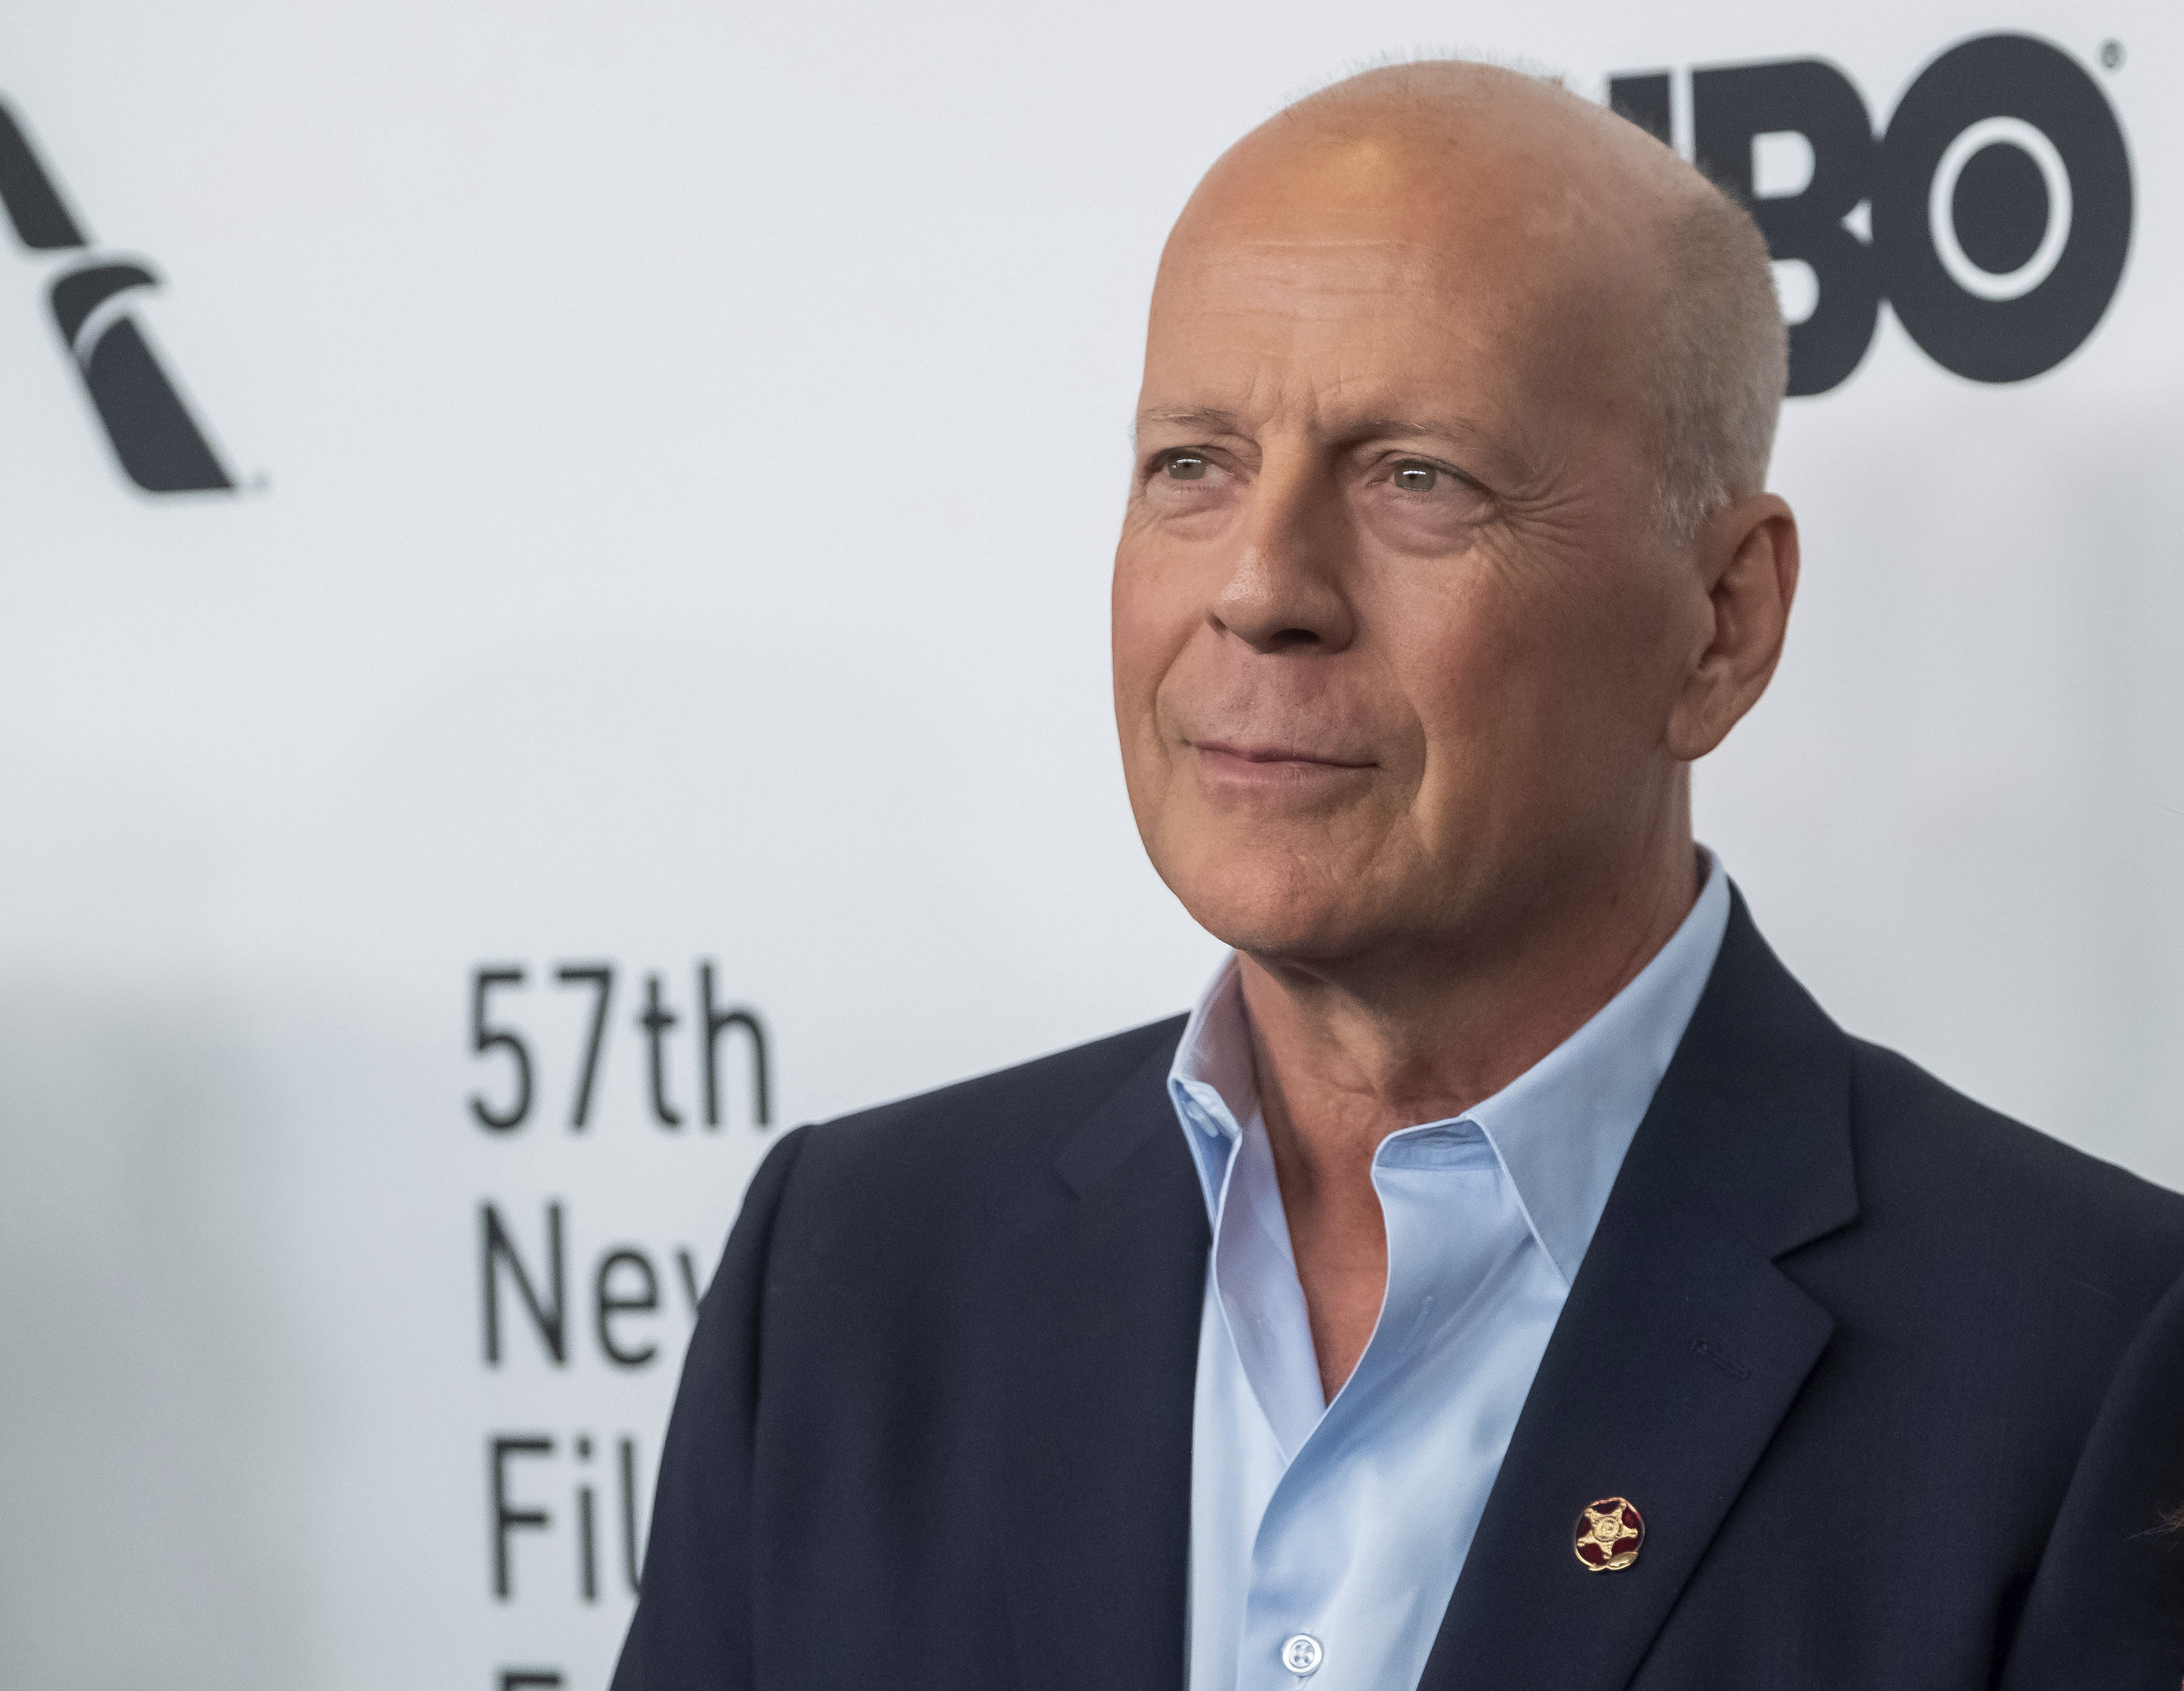 """Bruce Willis attends the """"Motherless Brooklyn"""" premiere during the 57th New York Film Festival at Alice Tully Hall on Friday, Oct. 11, 2019, in New York."""